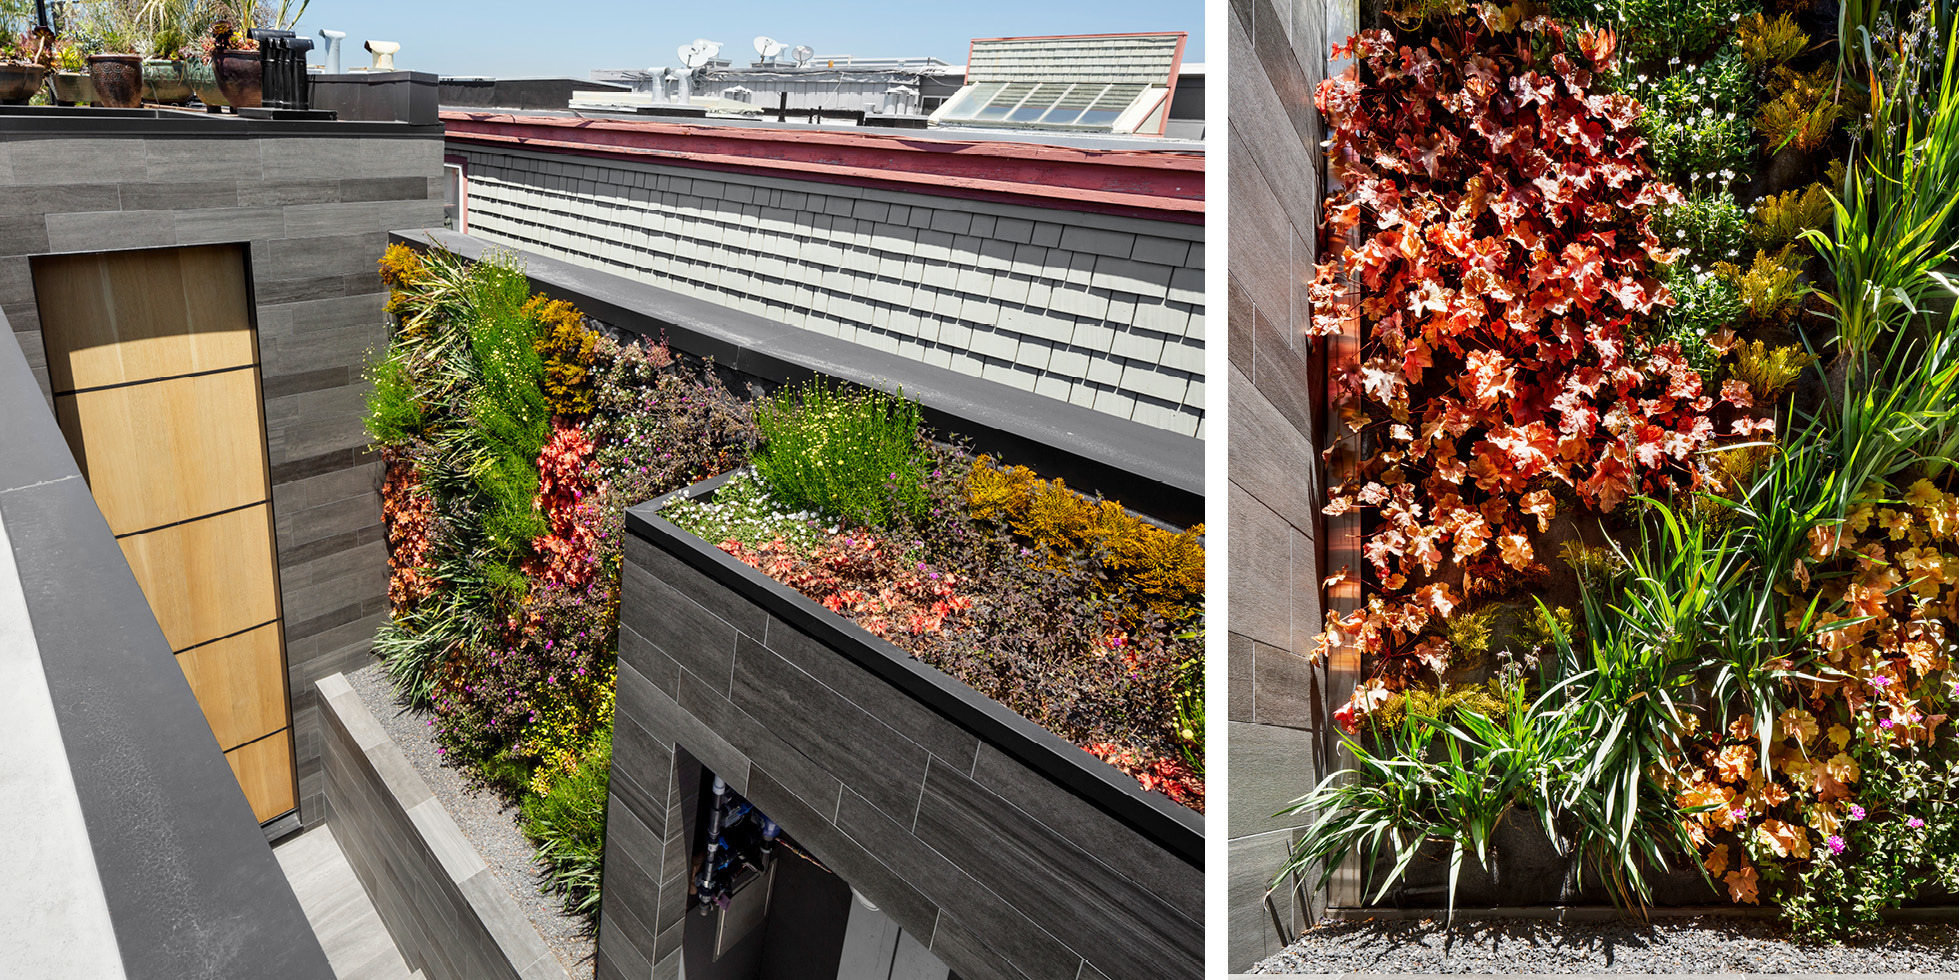 San Francisco Residence Living Wall by Habitat Horticulture - View 4